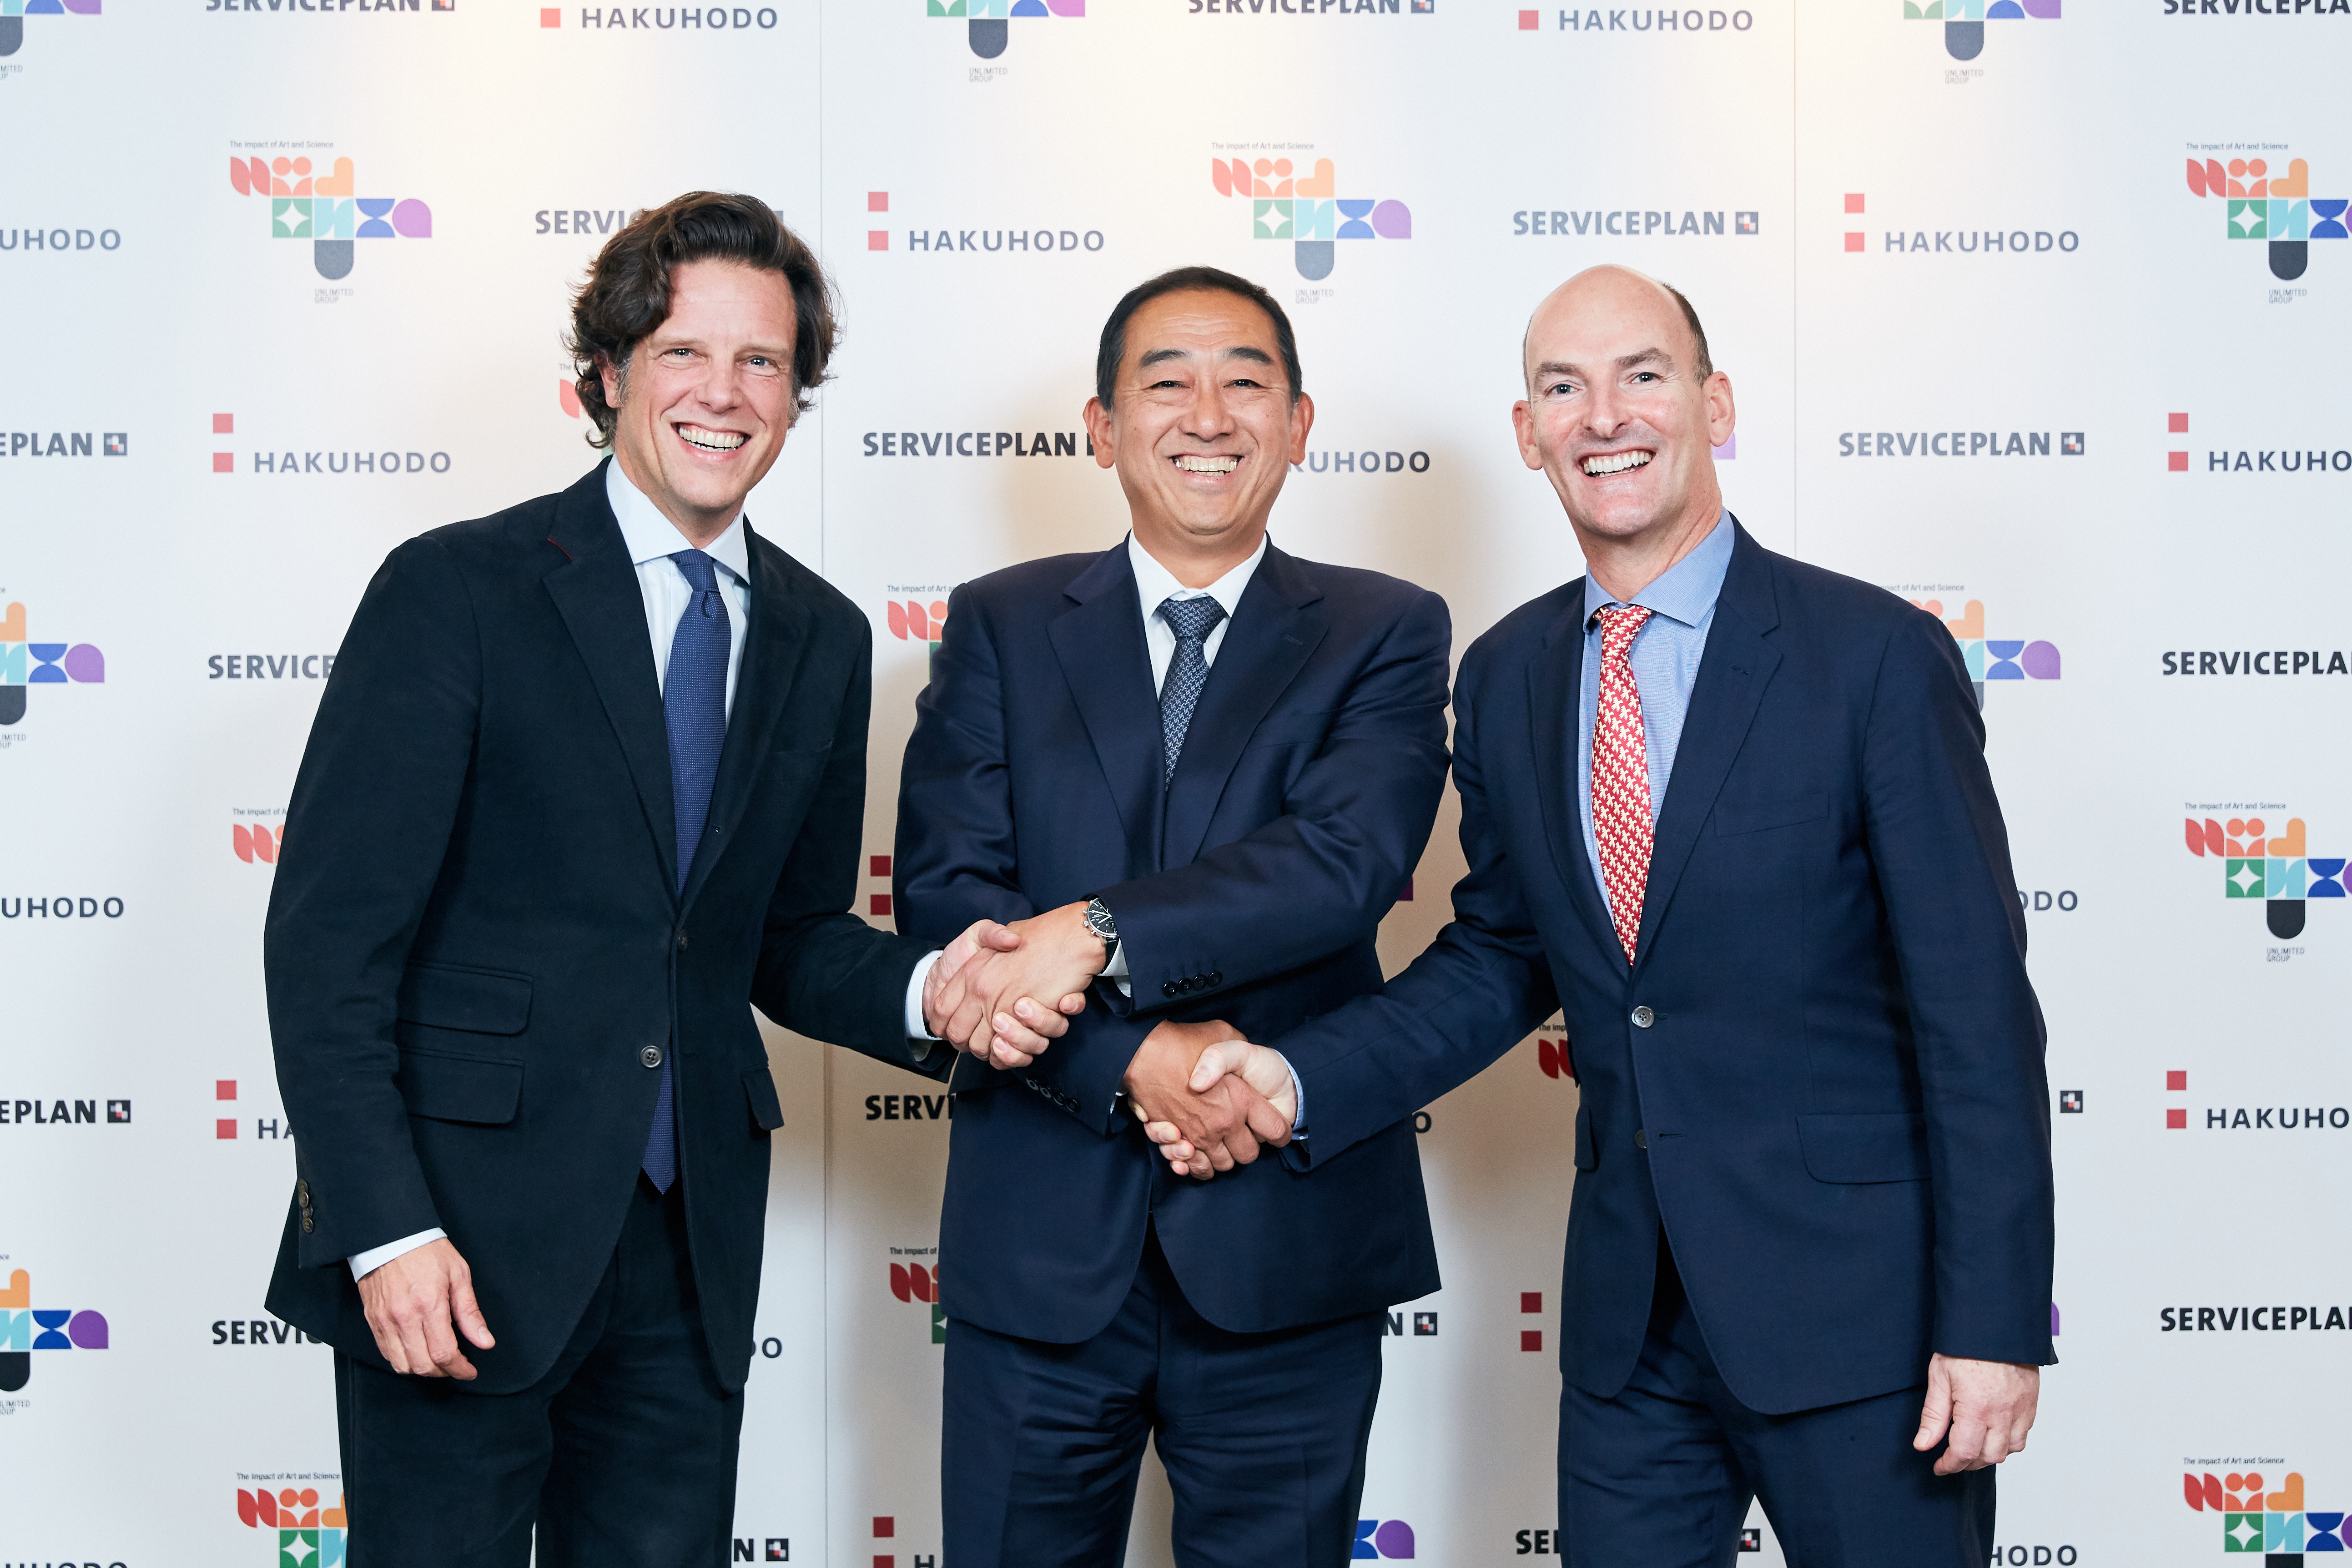 Serviceplan Group, The Unlimited Group and Hakuhodo Form Strategic Alliance